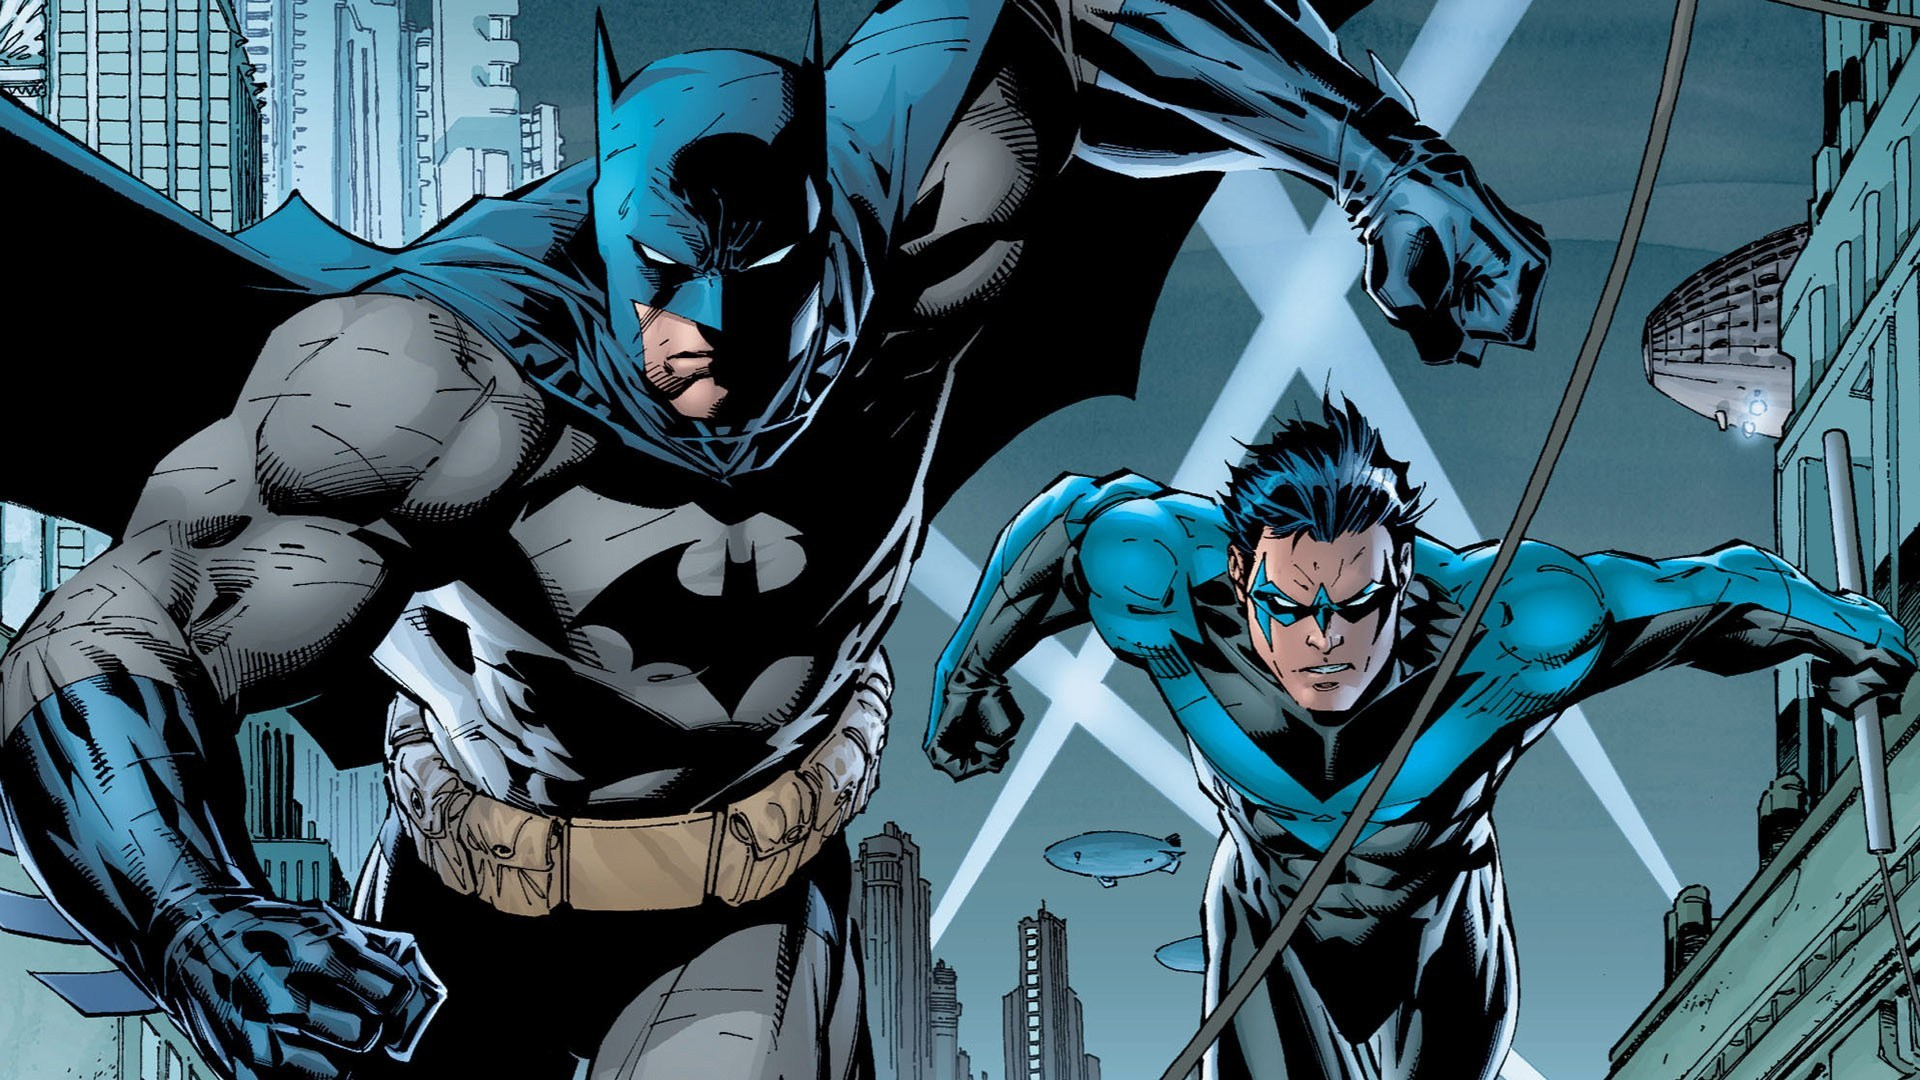 Art Batman DC Jim Lee Nightwing Dick Grayson HD Wallpaper 1920x1080